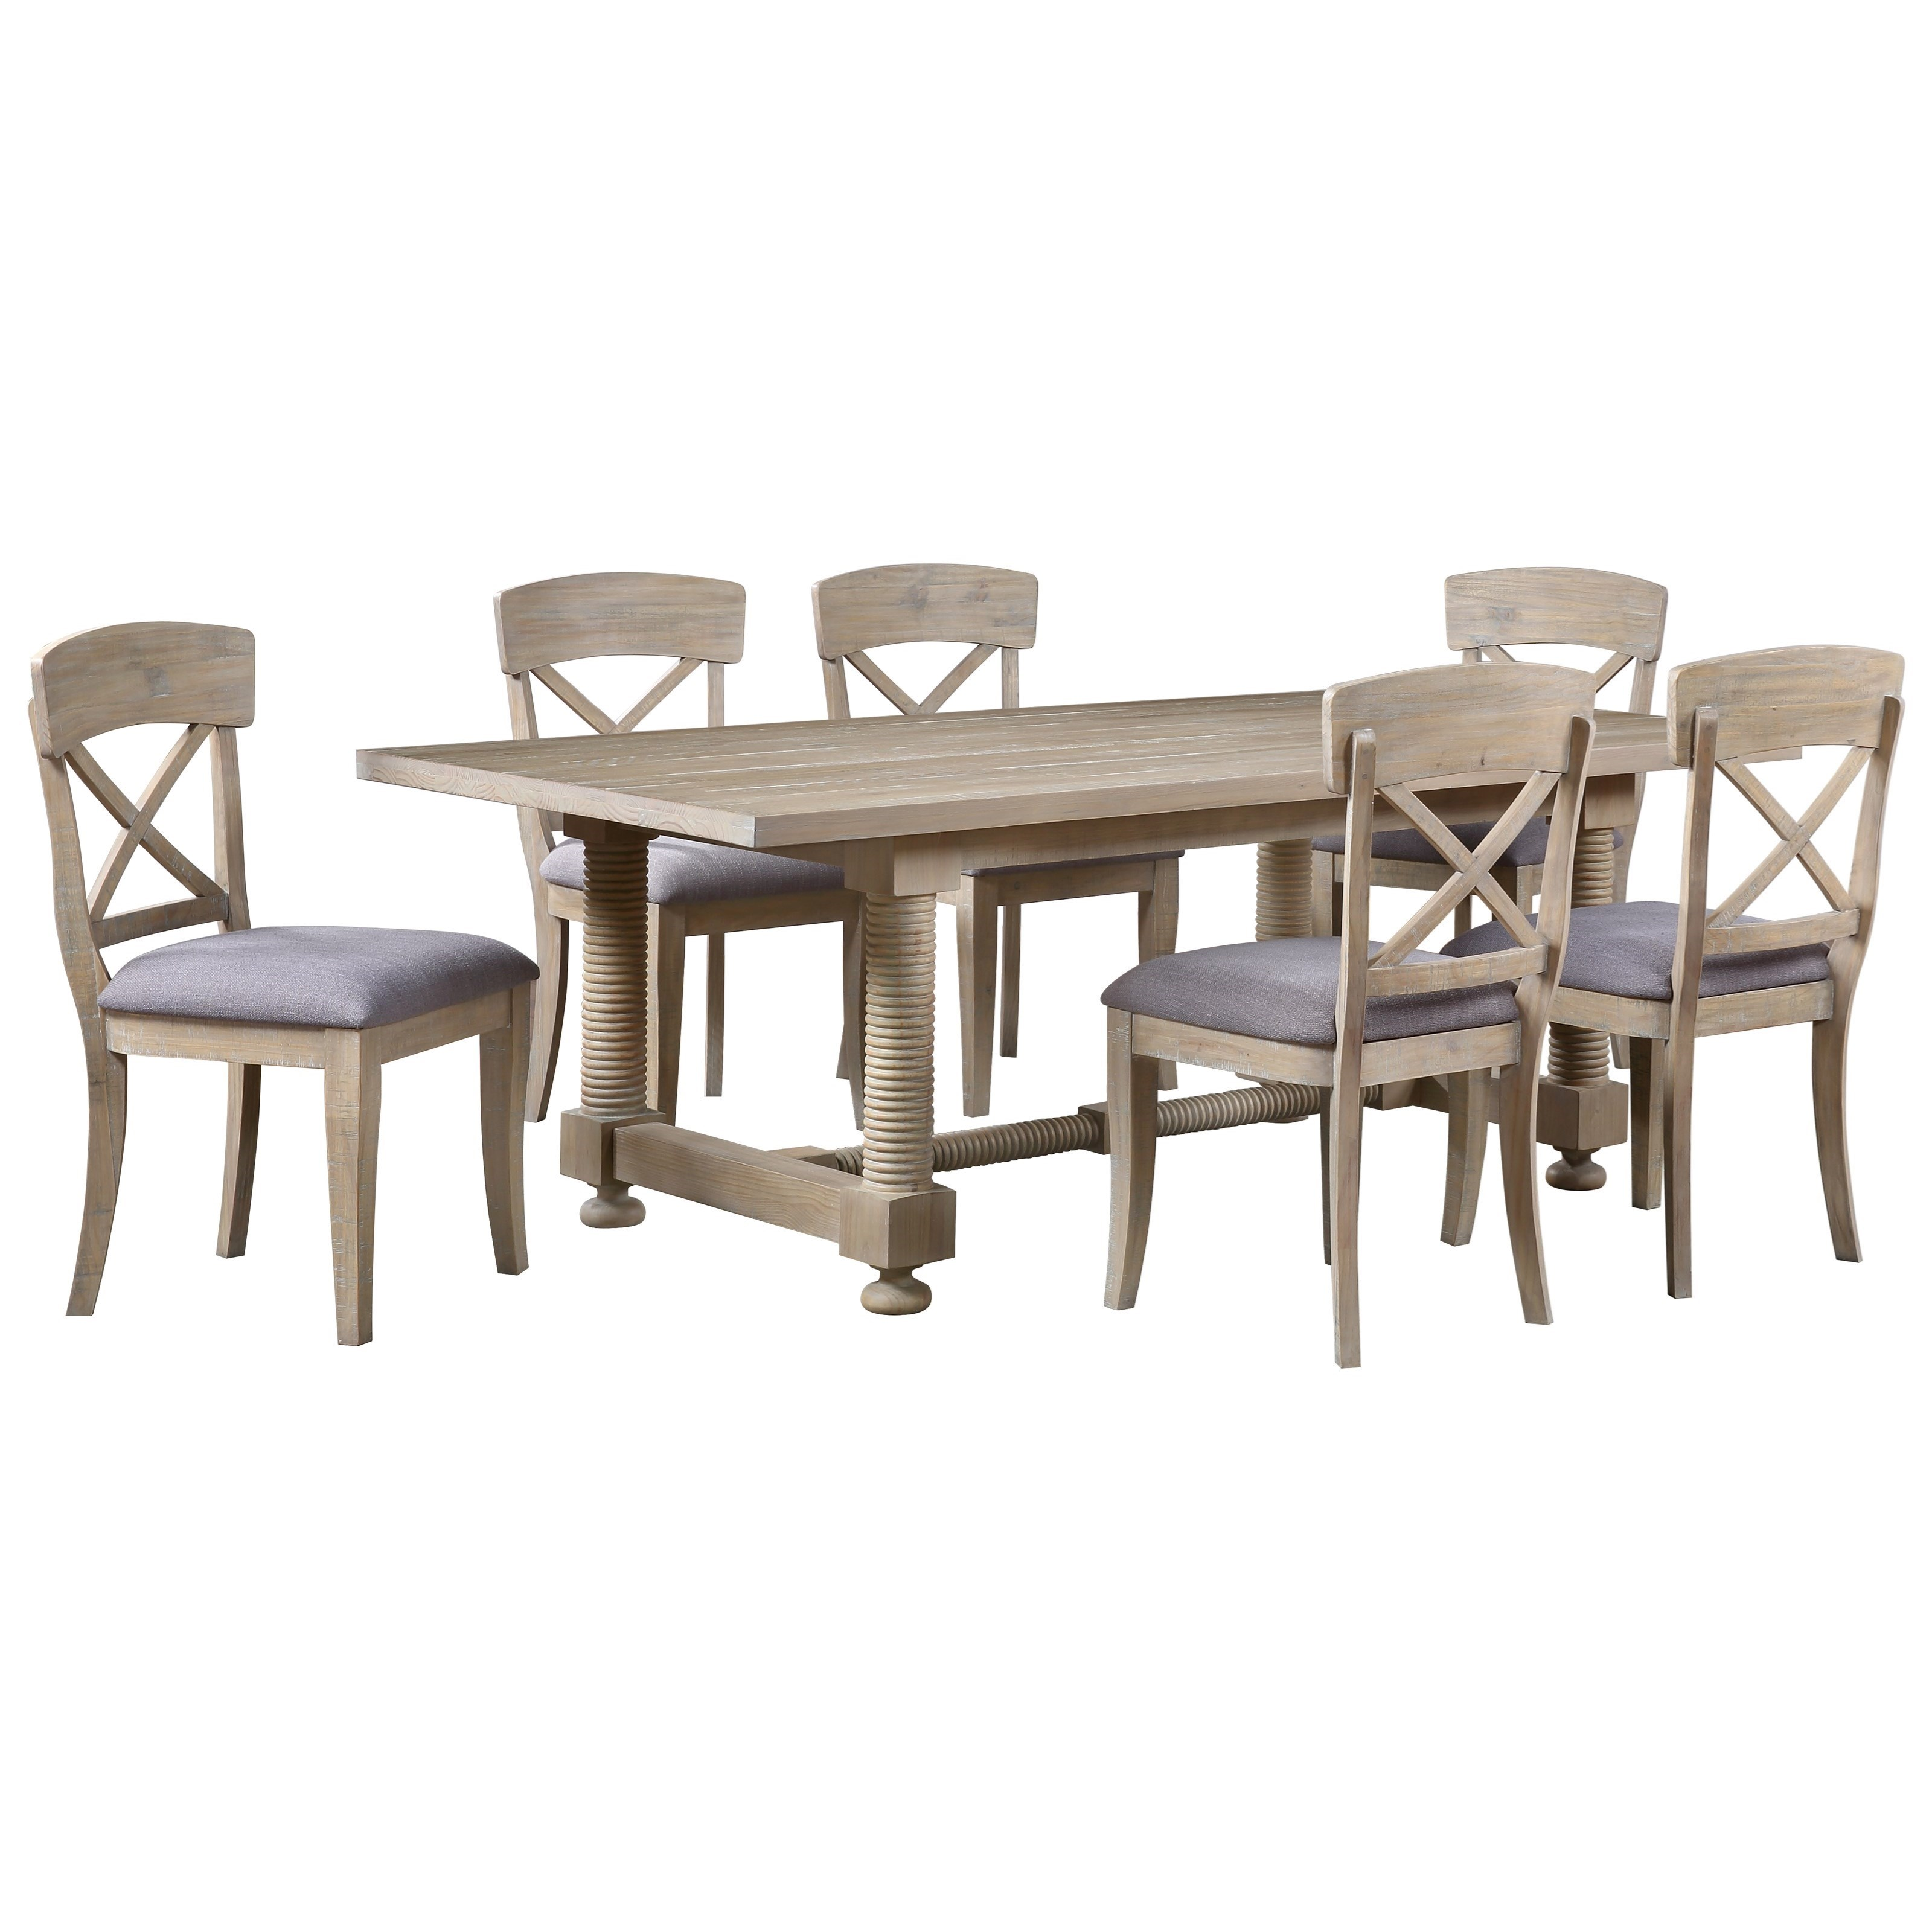 Barrister 7-Piece Table and Chair Set by C2C at Walker's Furniture